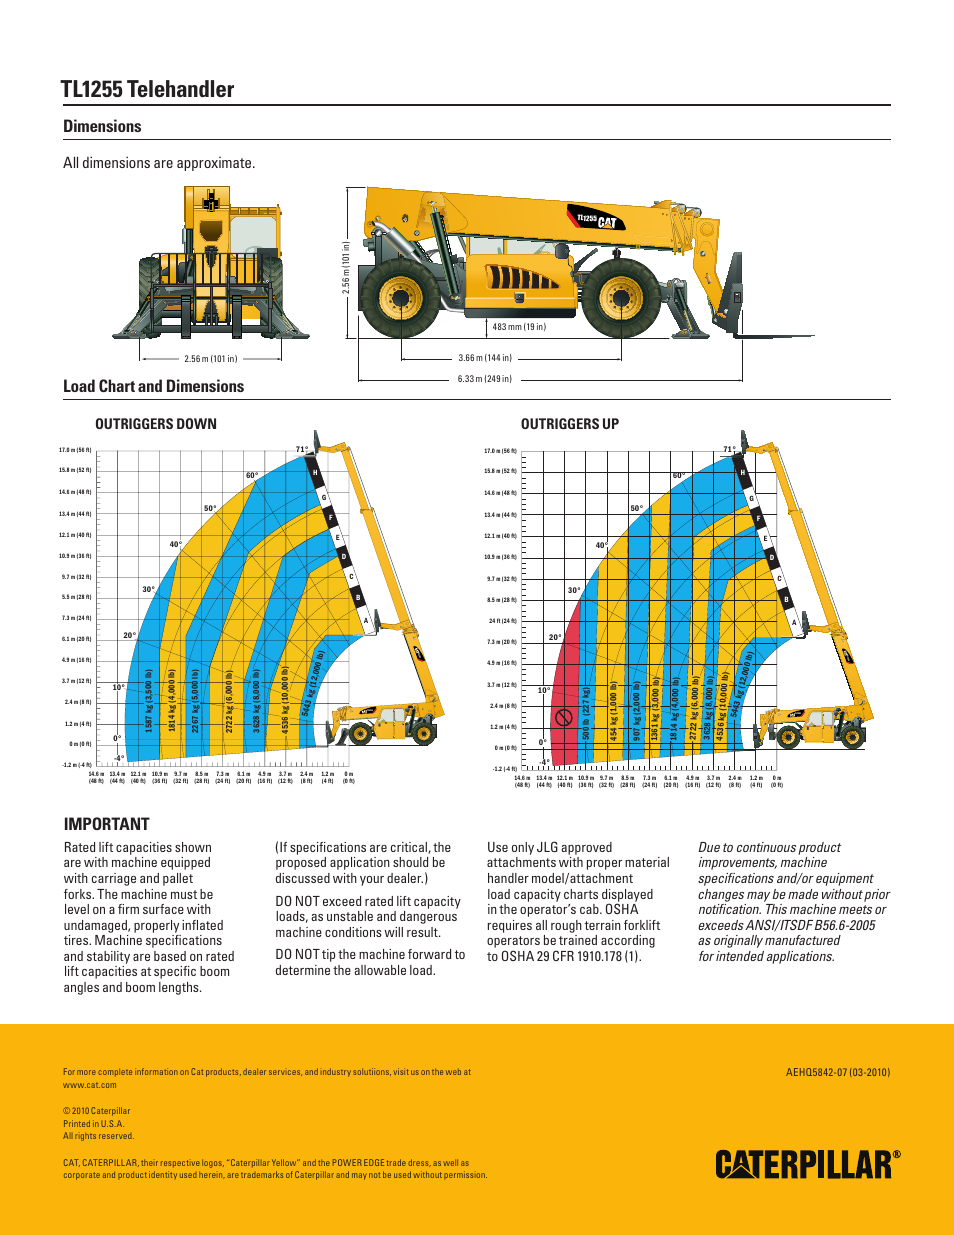 Tl1255 telehandler, Dimensions, Load chart and dimensions | Important, All  dimensions are approximate